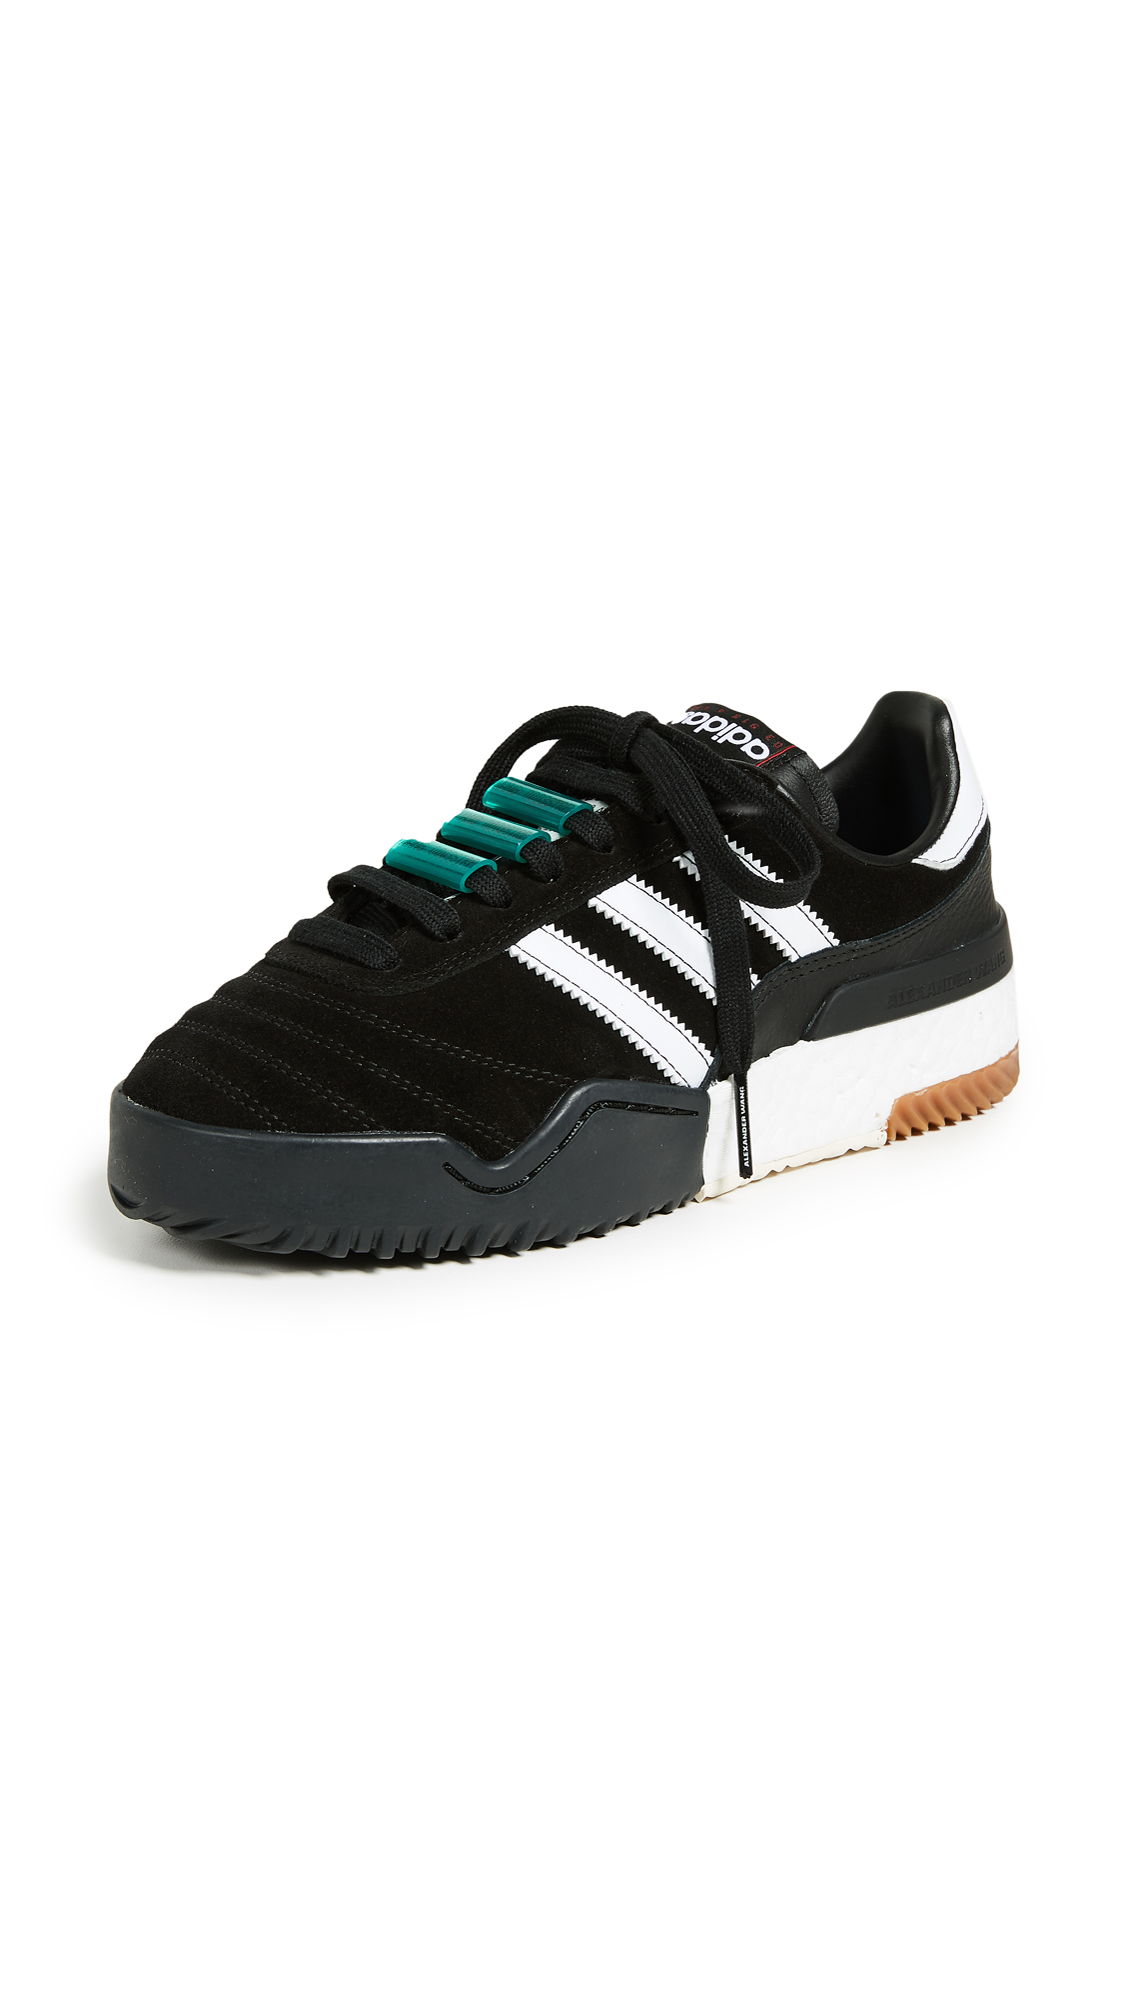 adidas Originals by Alexander Wang AW Bball Soccer Sneakers - Core Black/Ftwr White/Black